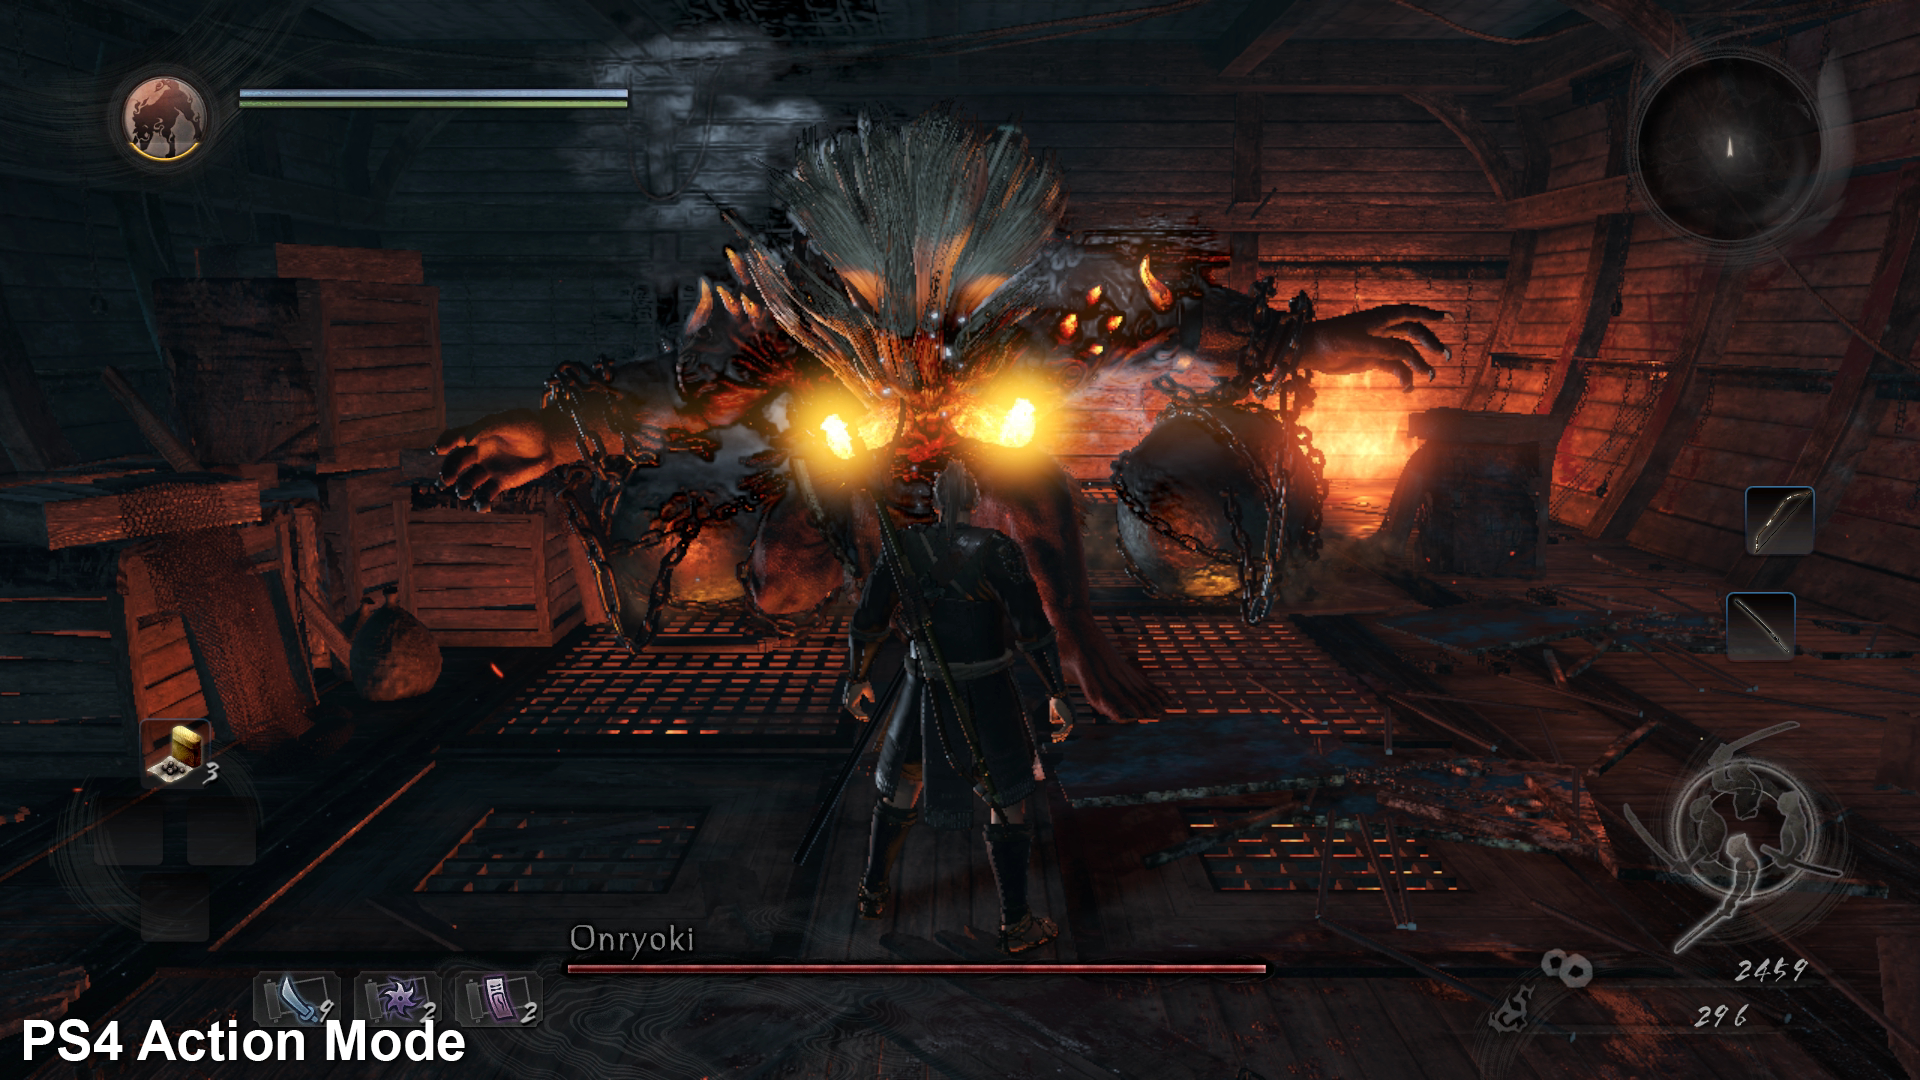 Face Off Nioh On Ps4 And Pro The Last Guardian Reg 3 Even In Close Quarters Large Enemy Encounters Such As This Can Send Resolution Plummeting Base Playstation 4